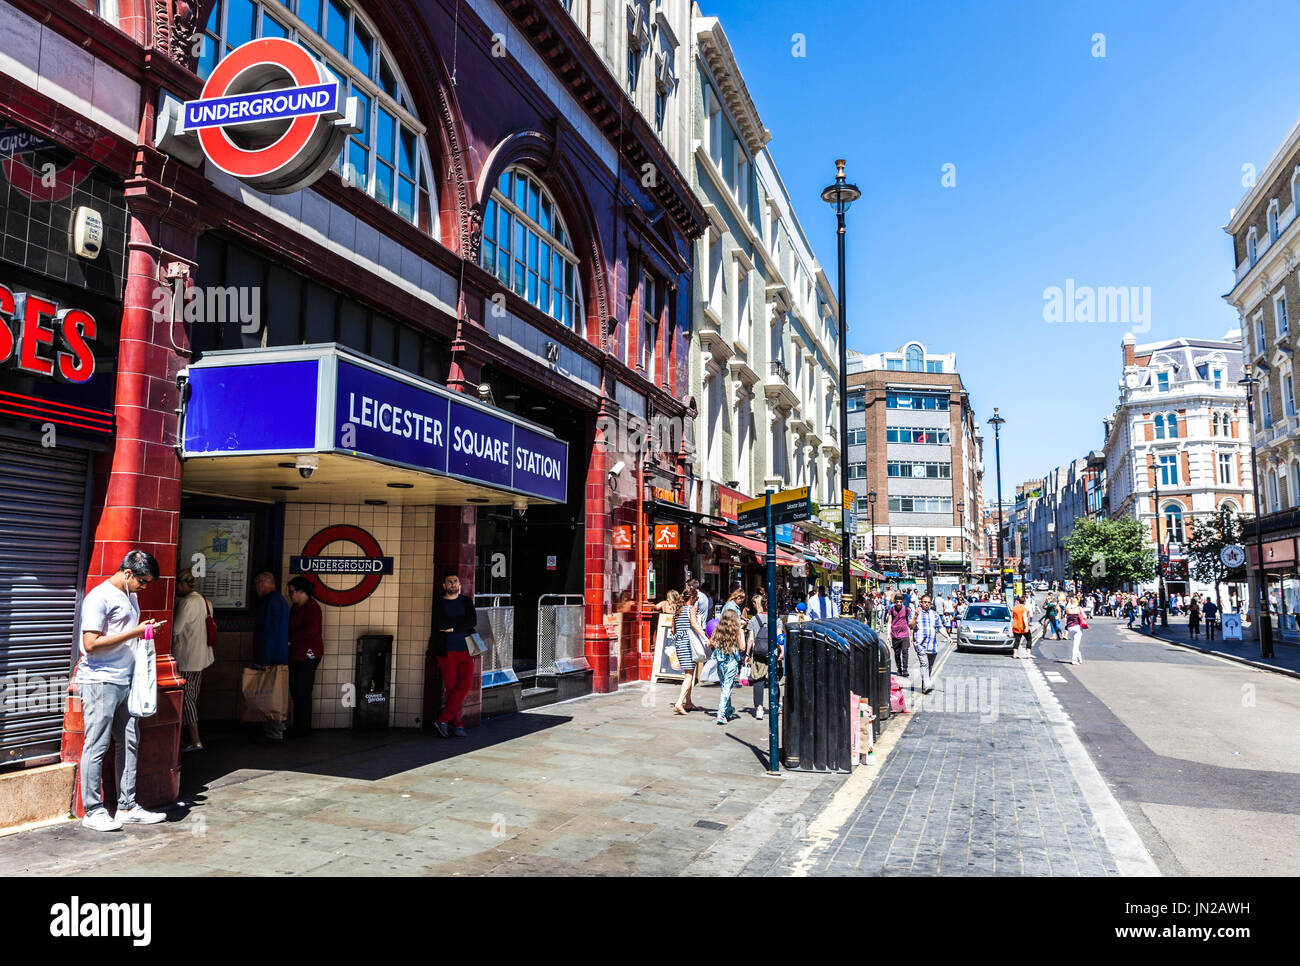 Leicester Square underground station, Cranbourn street, Soho, London, WC2H, England, UK. - Stock Image